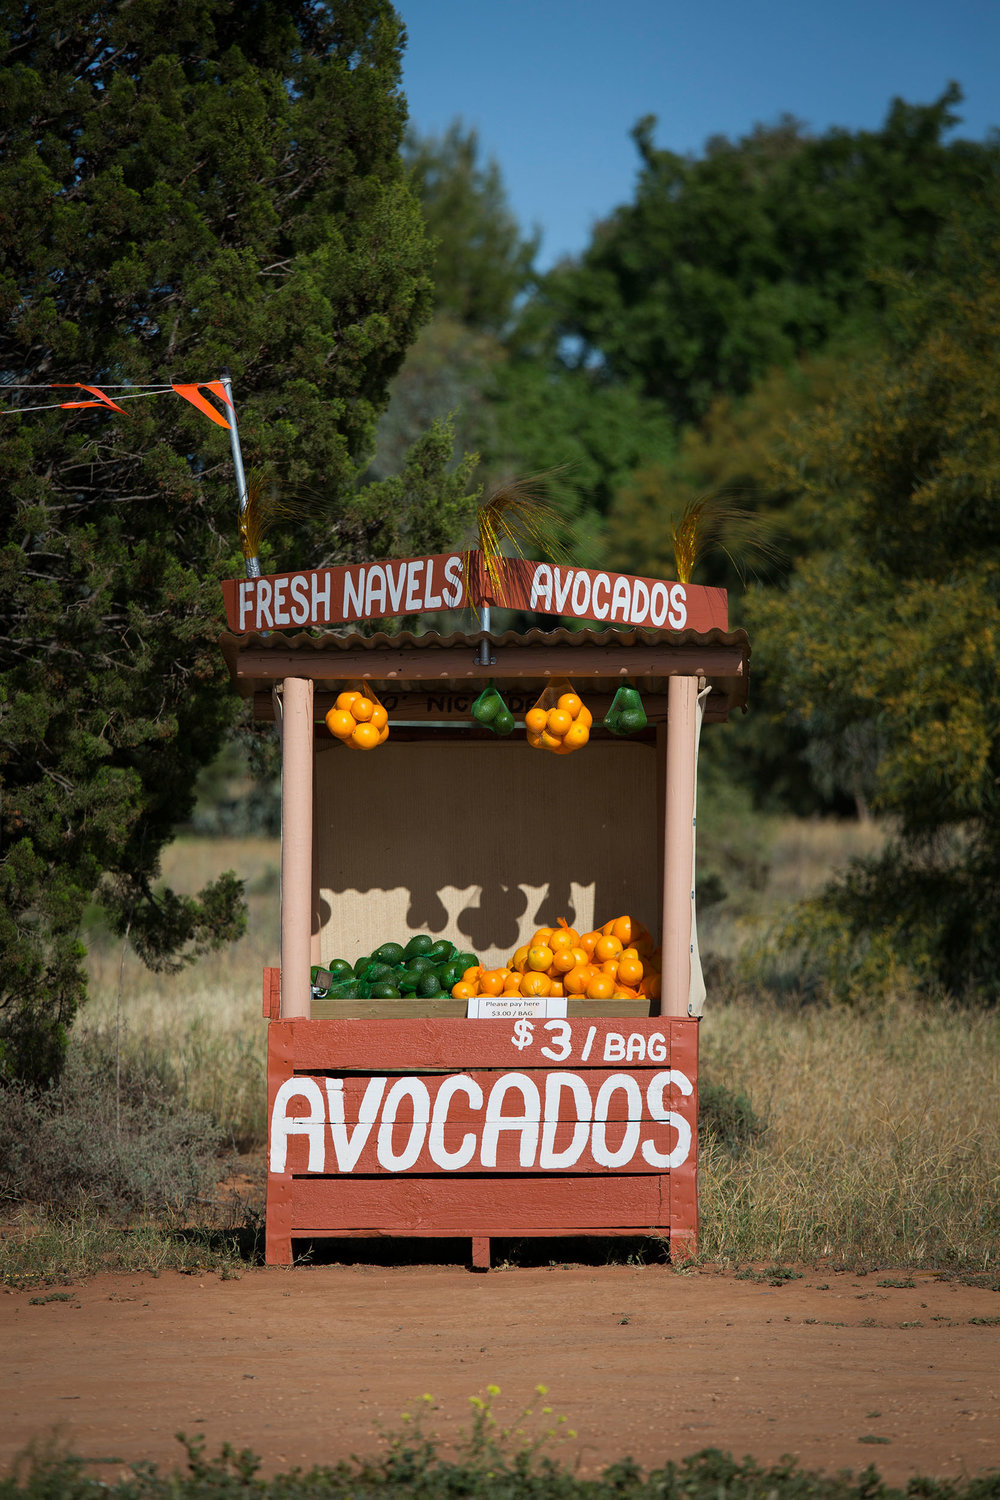 Roadside stall selling avocados and navel oranges, Merbein, VIC.